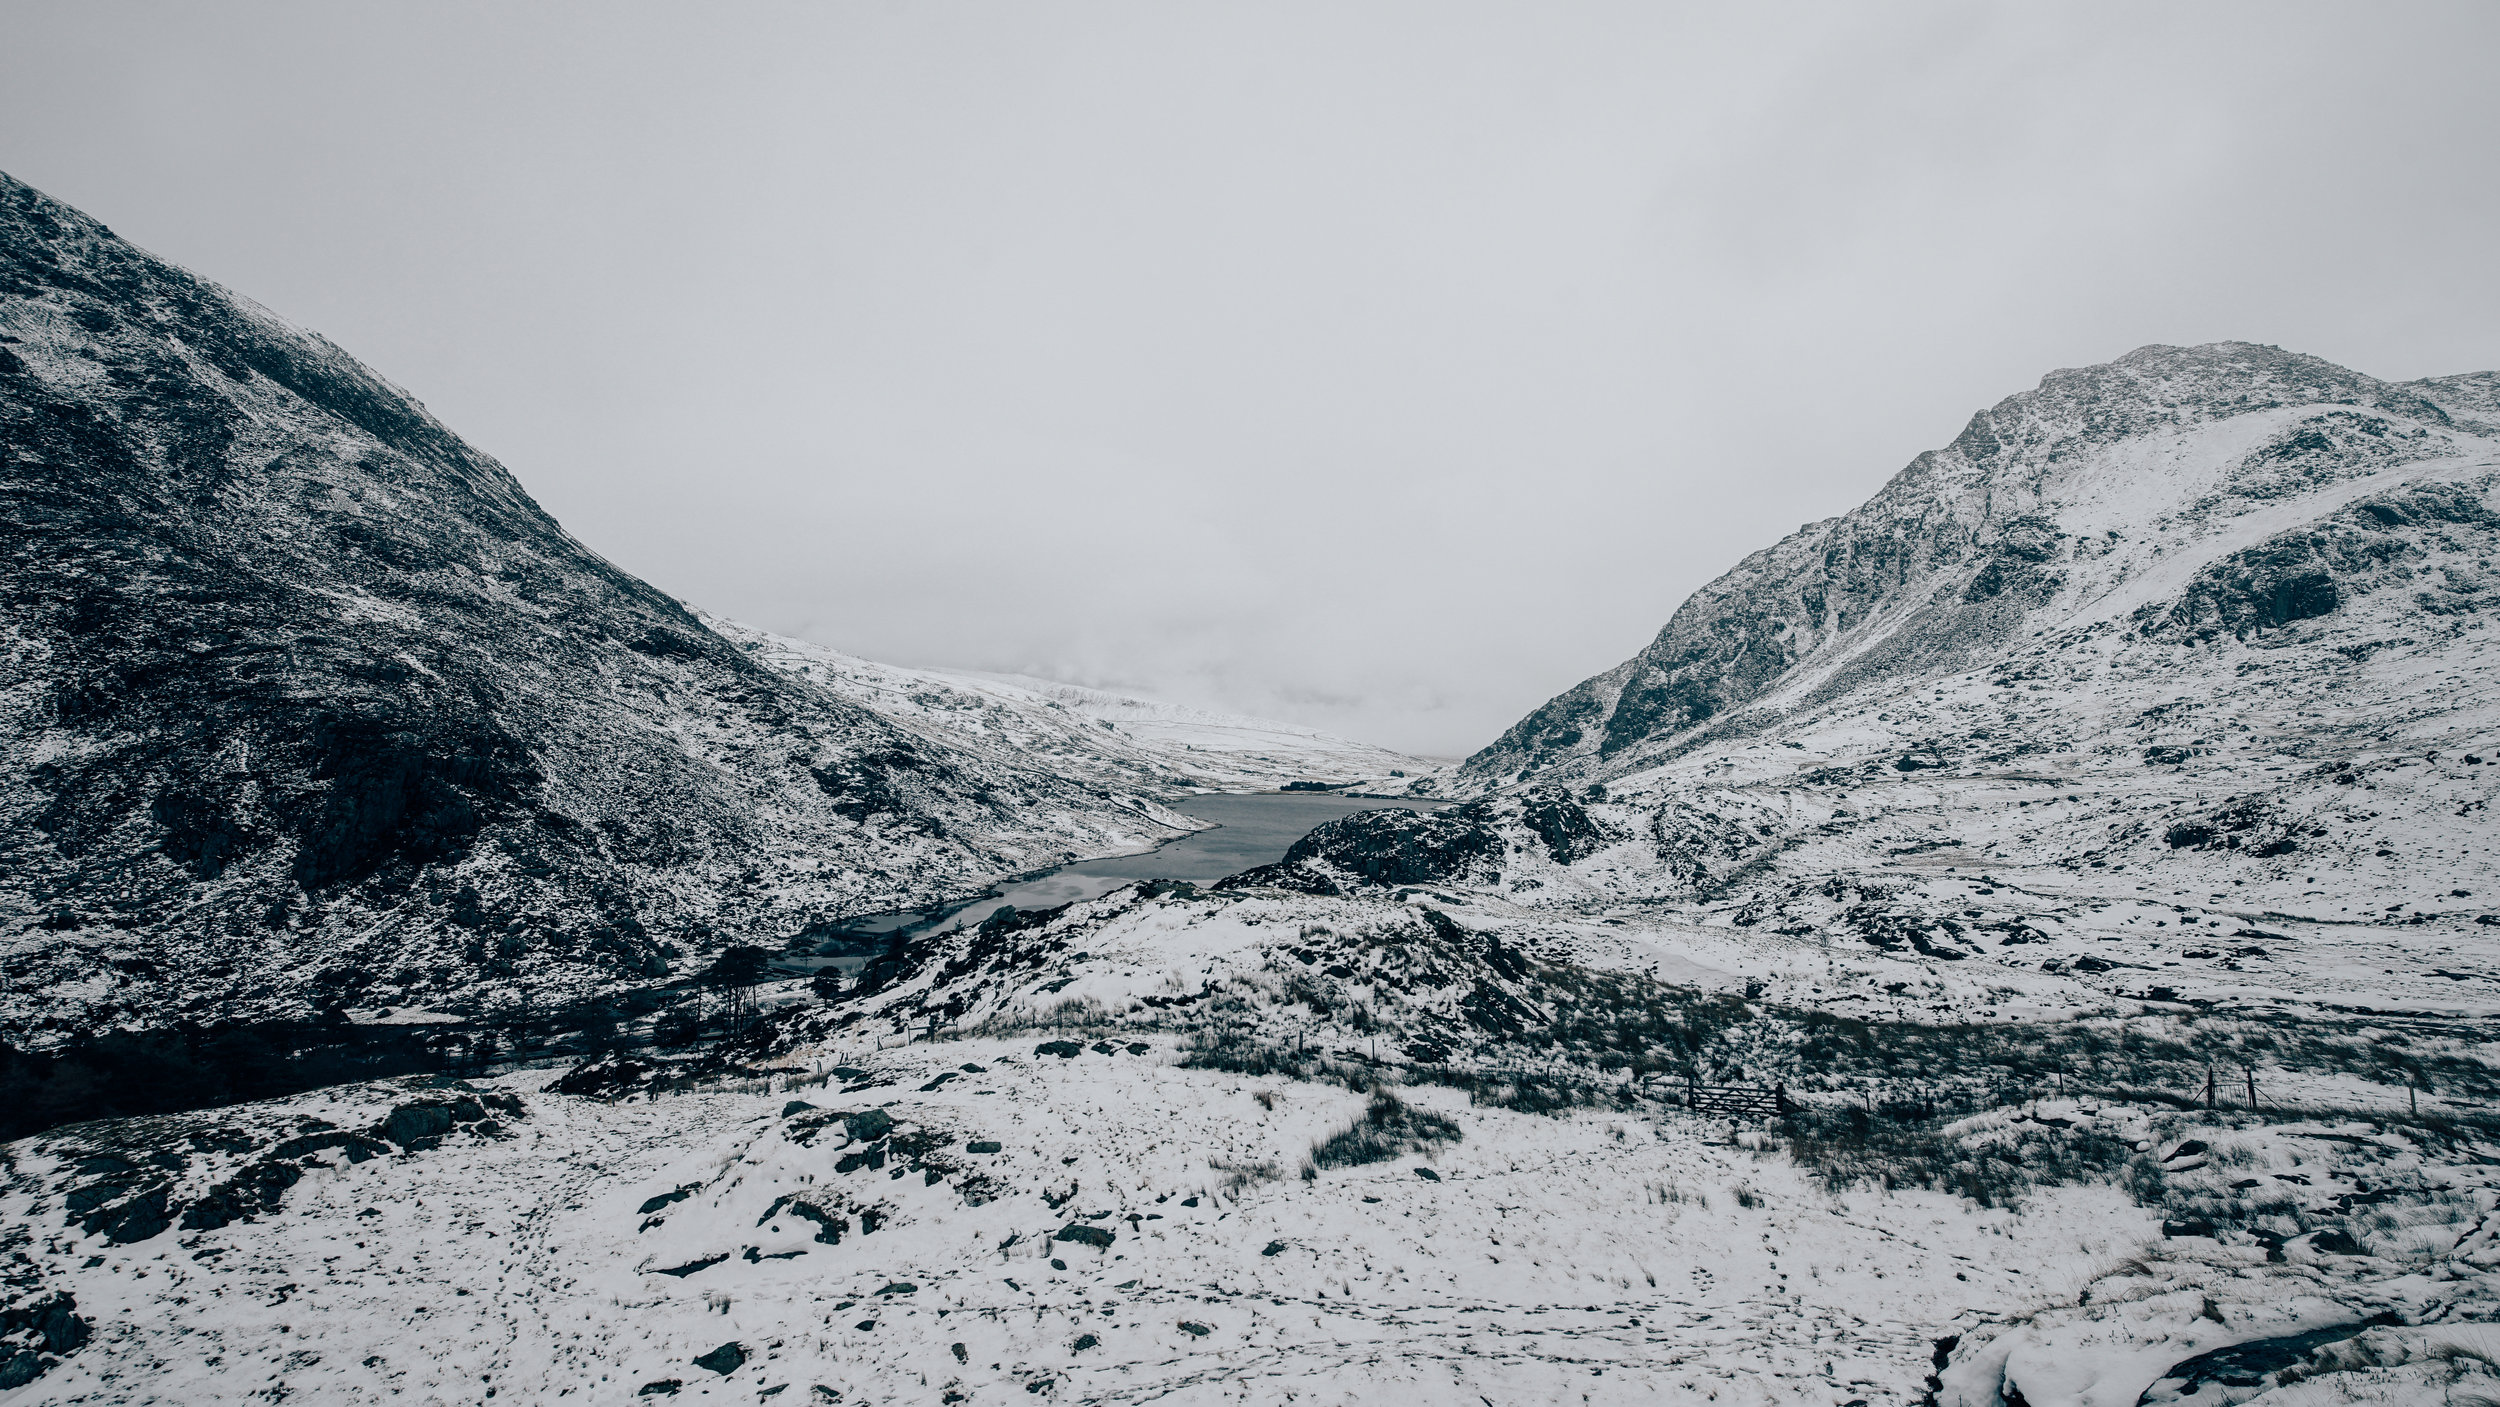 Native Snowdonia | Zeiss Lenses